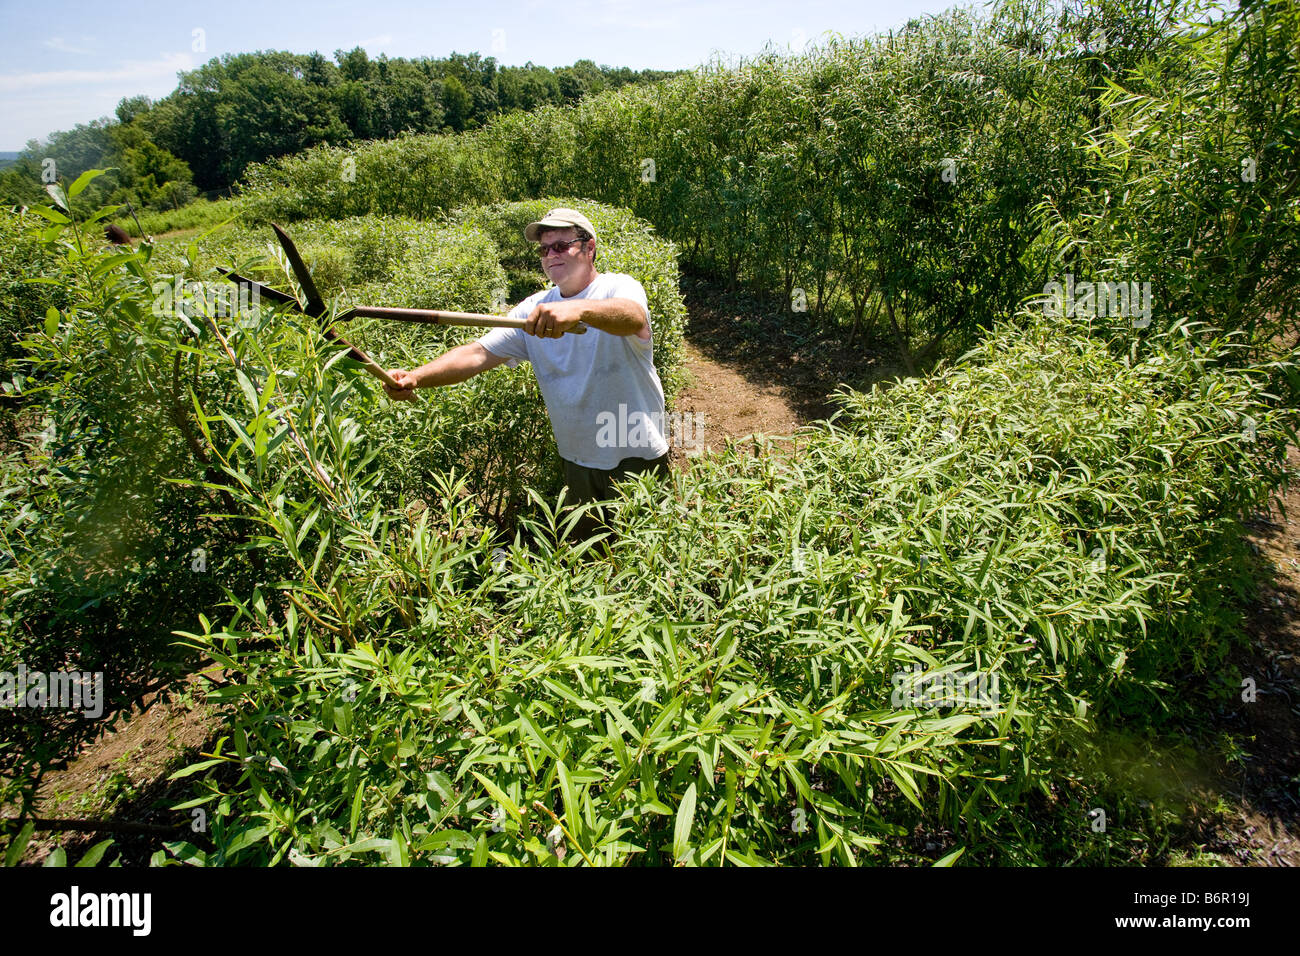 At the UConn Plant Science Research Farm in Storrs, CT, USA,  A researcher prunes Willows into a maze - Stock Image